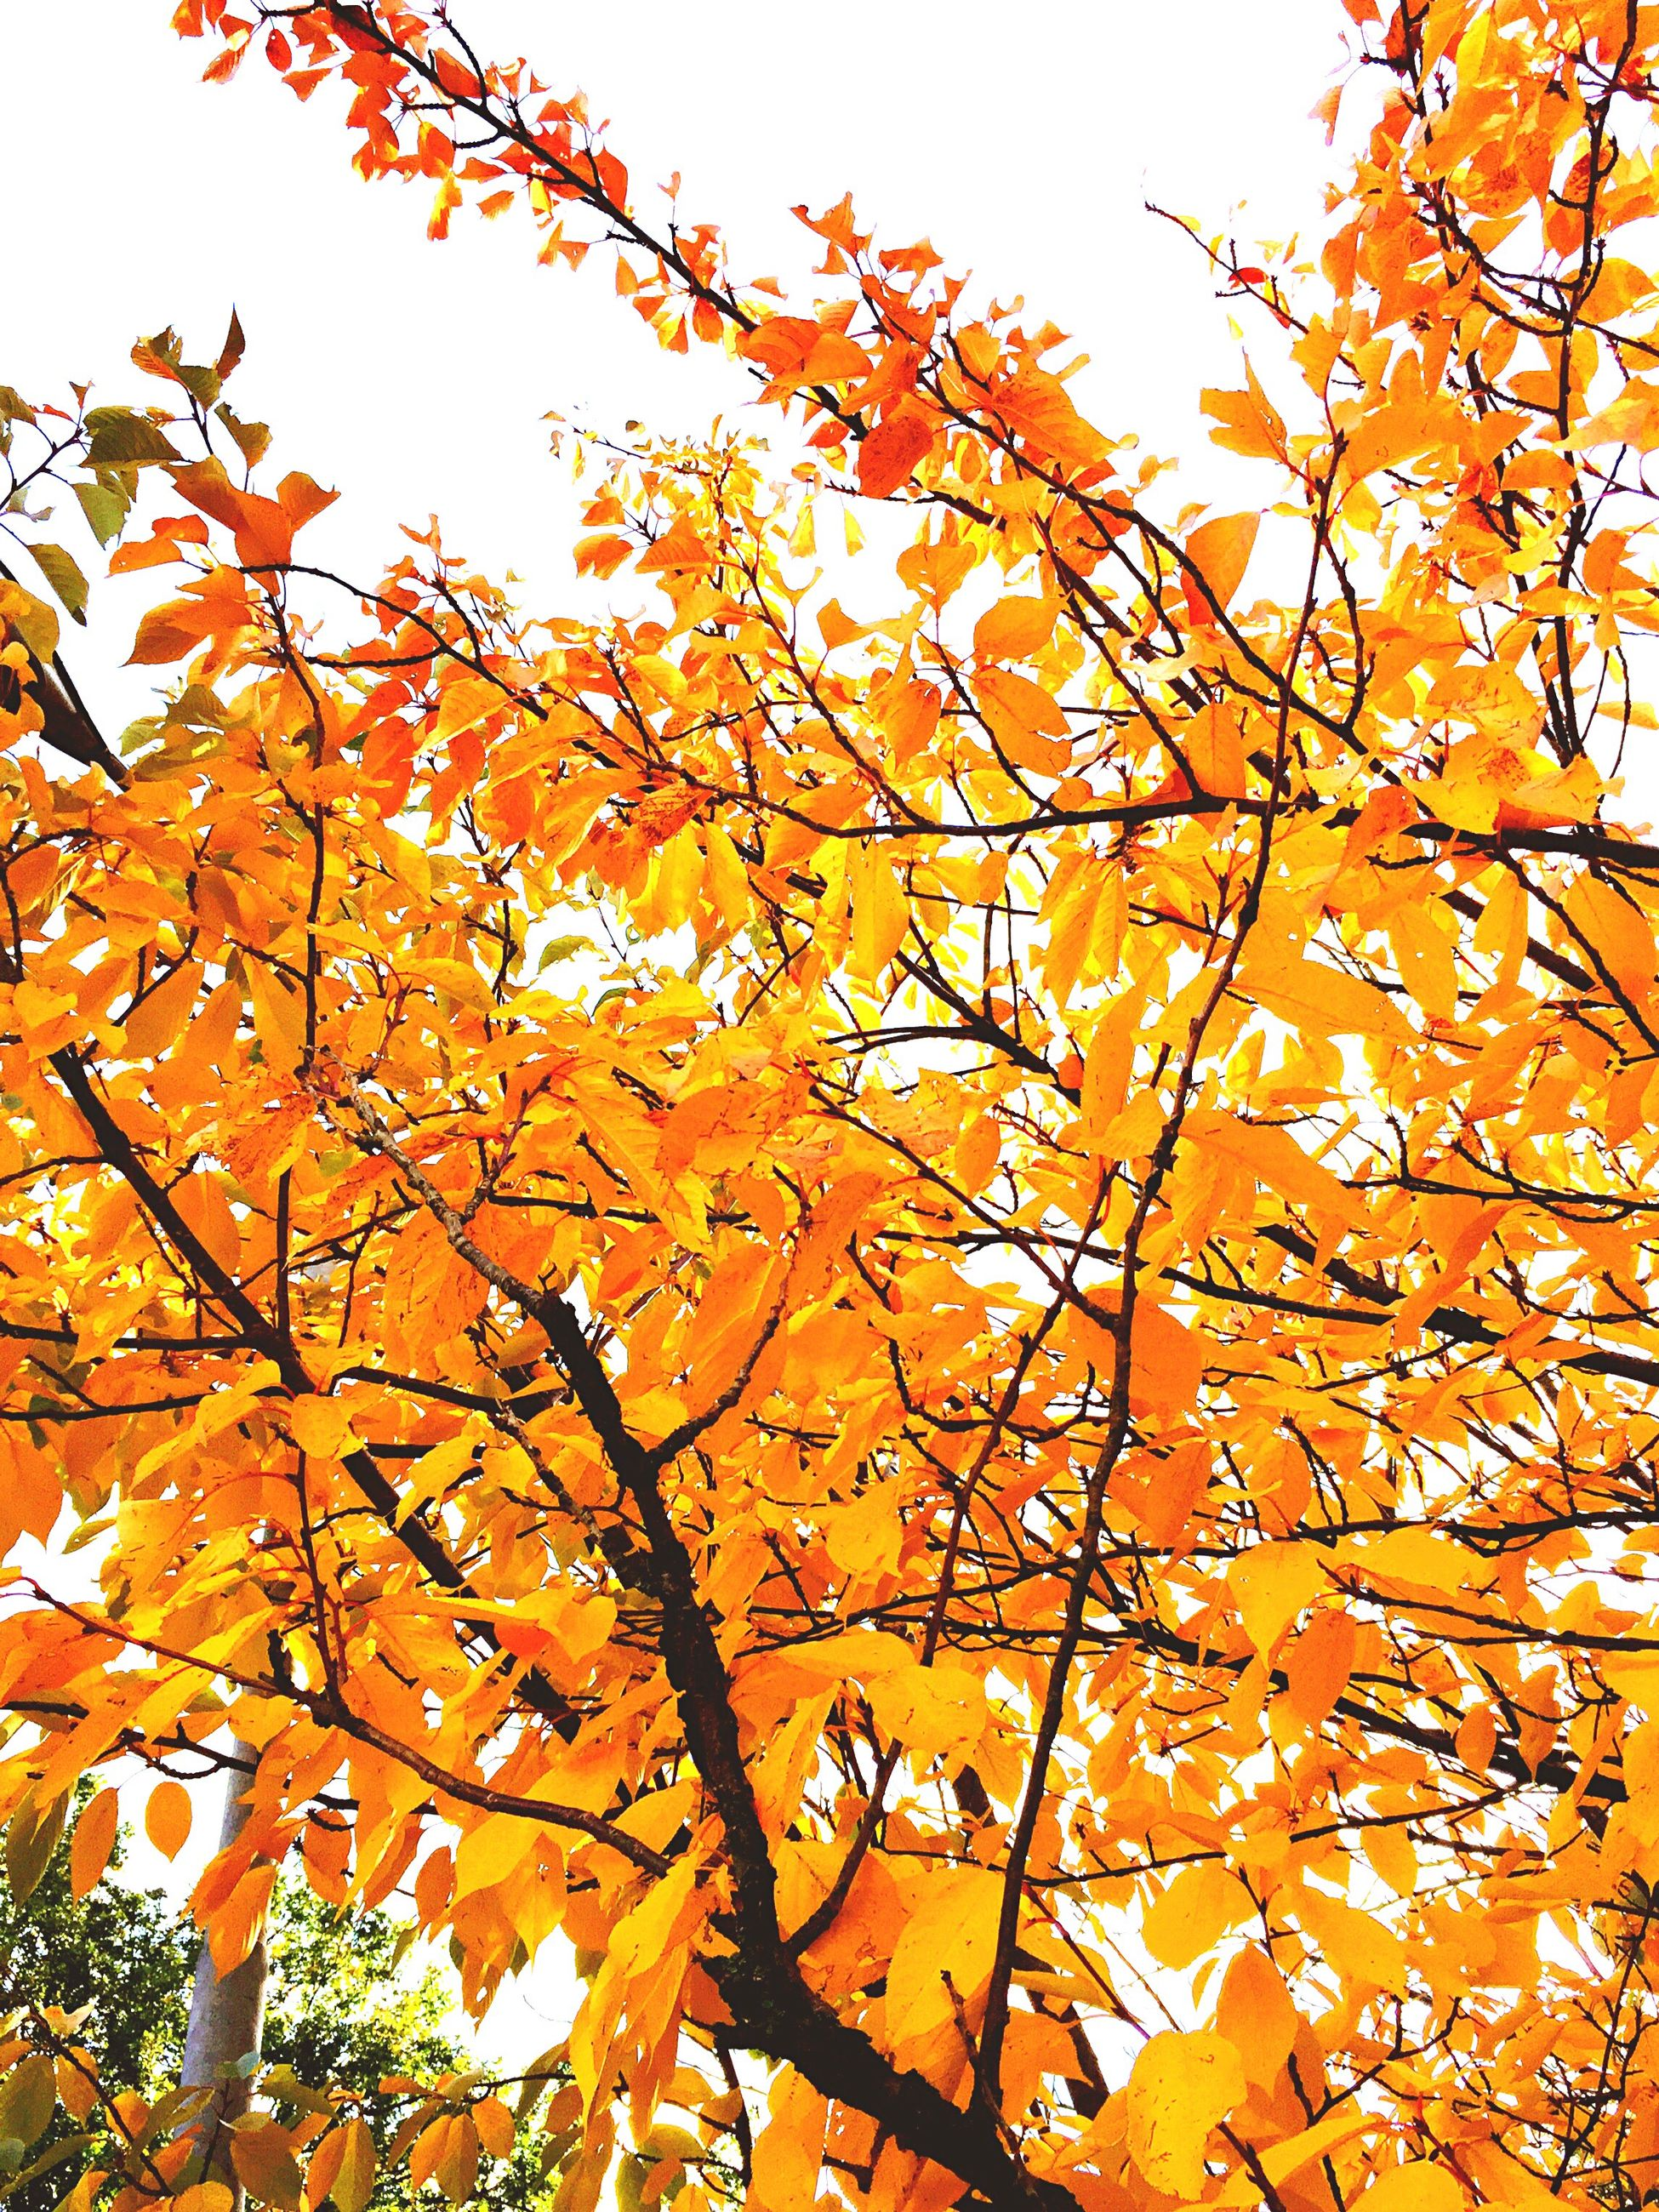 autumn, change, tree, low angle view, growth, season, yellow, leaf, branch, clear sky, beauty in nature, orange color, nature, day, outdoors, no people, flower, vibrant color, tranquility, sky